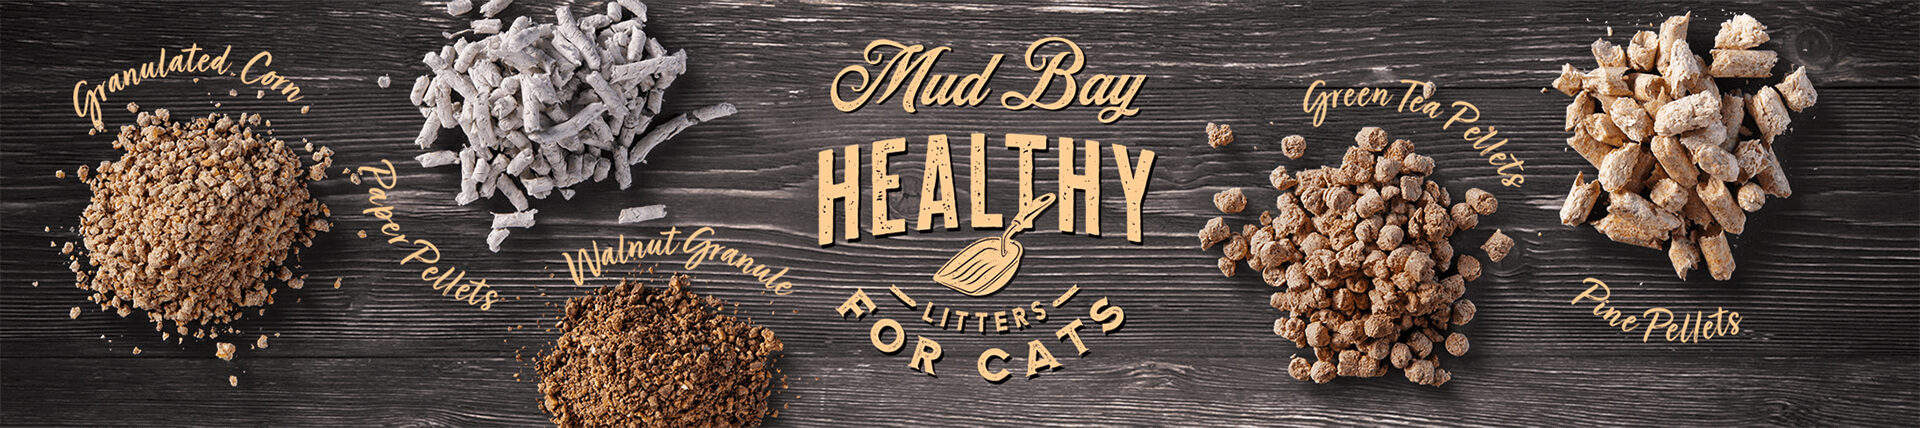 Five types of litter representing the various textures of cat litter available at Mud Bay